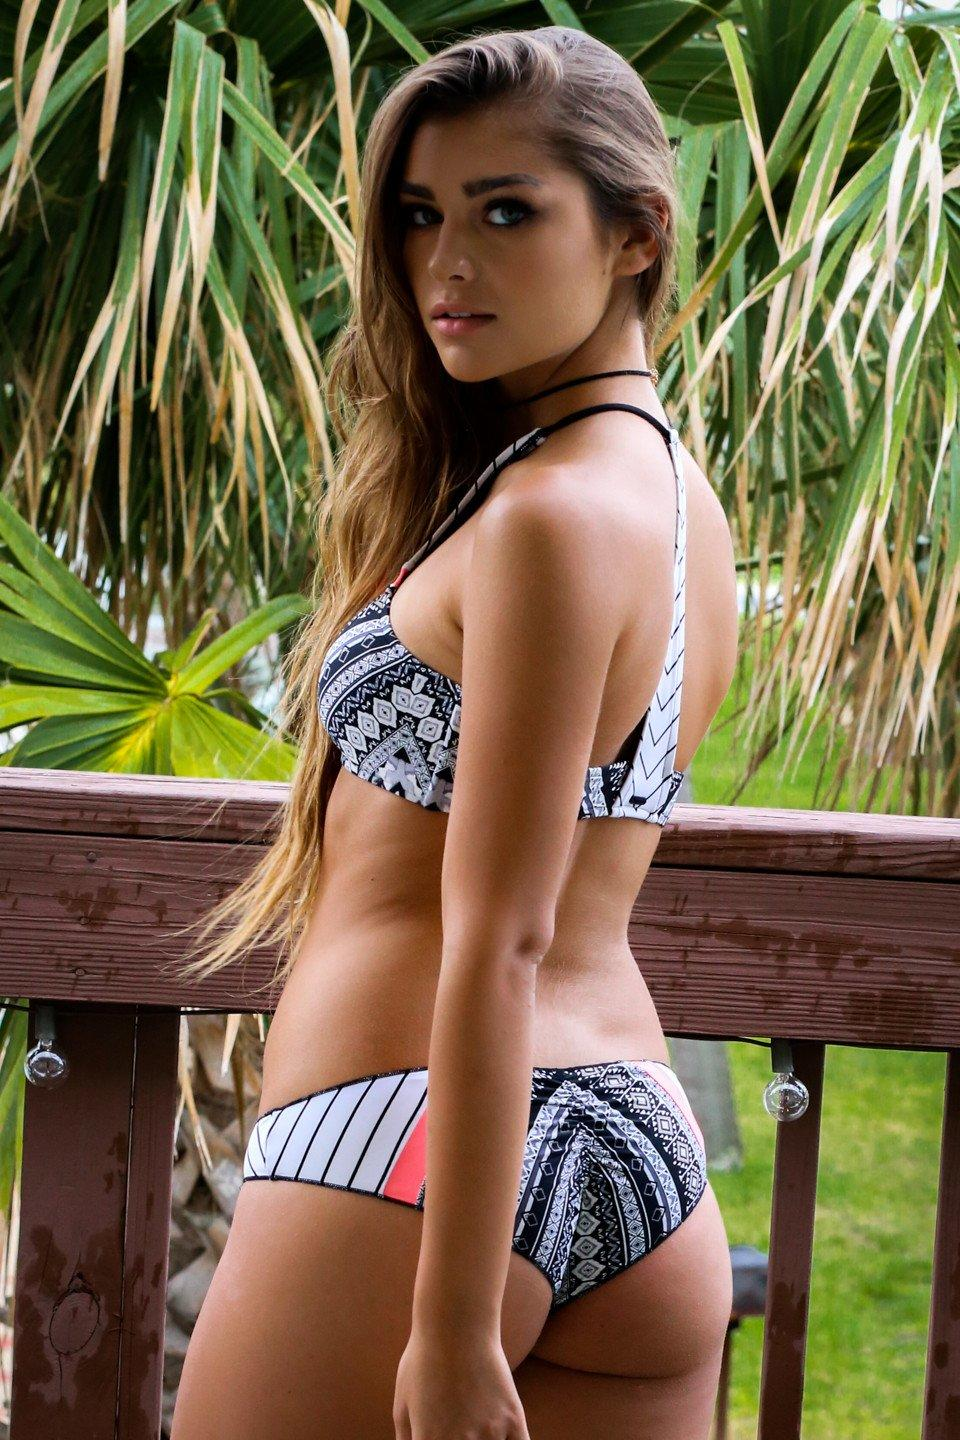 f5eb3095fc6 RIP CURL Surf Tribe Hi Neck Bikini Top from Amazing Lace